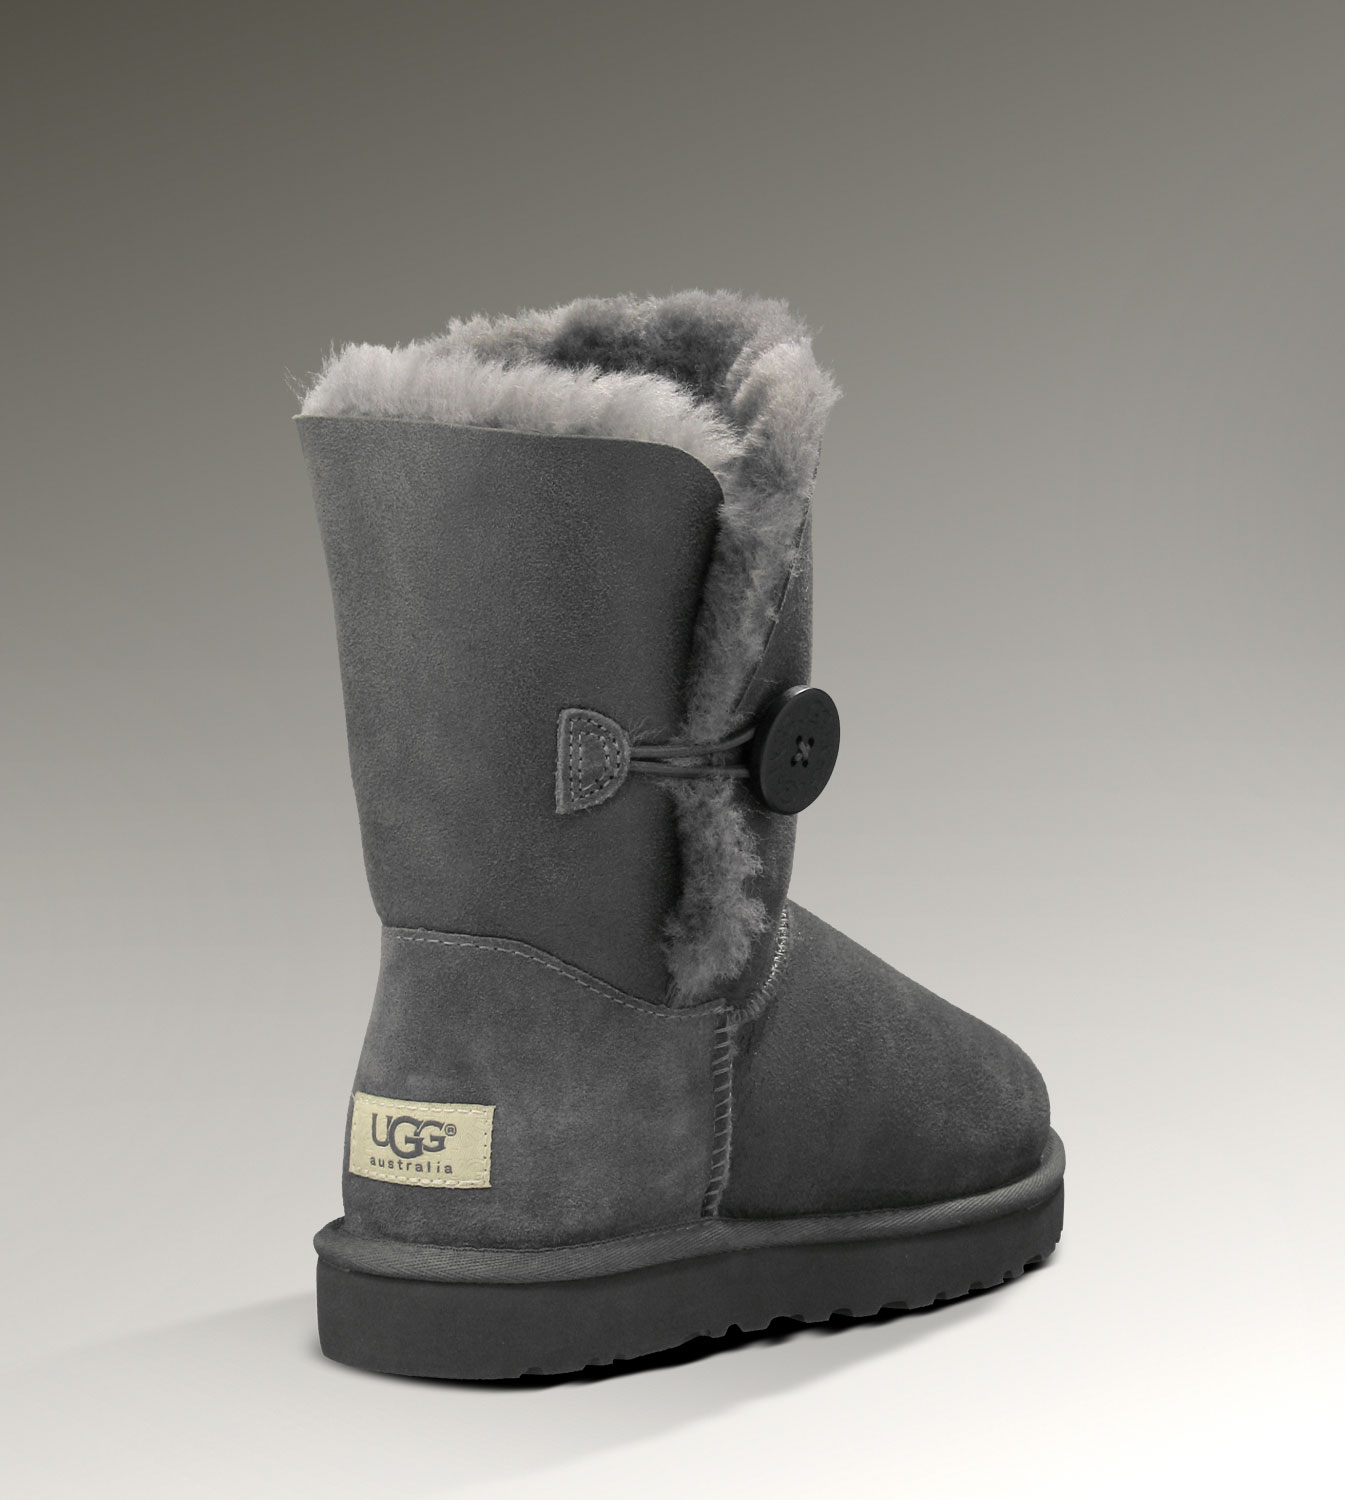 UGG Bailey Button Bomber 5838 Jacket Grey Boots